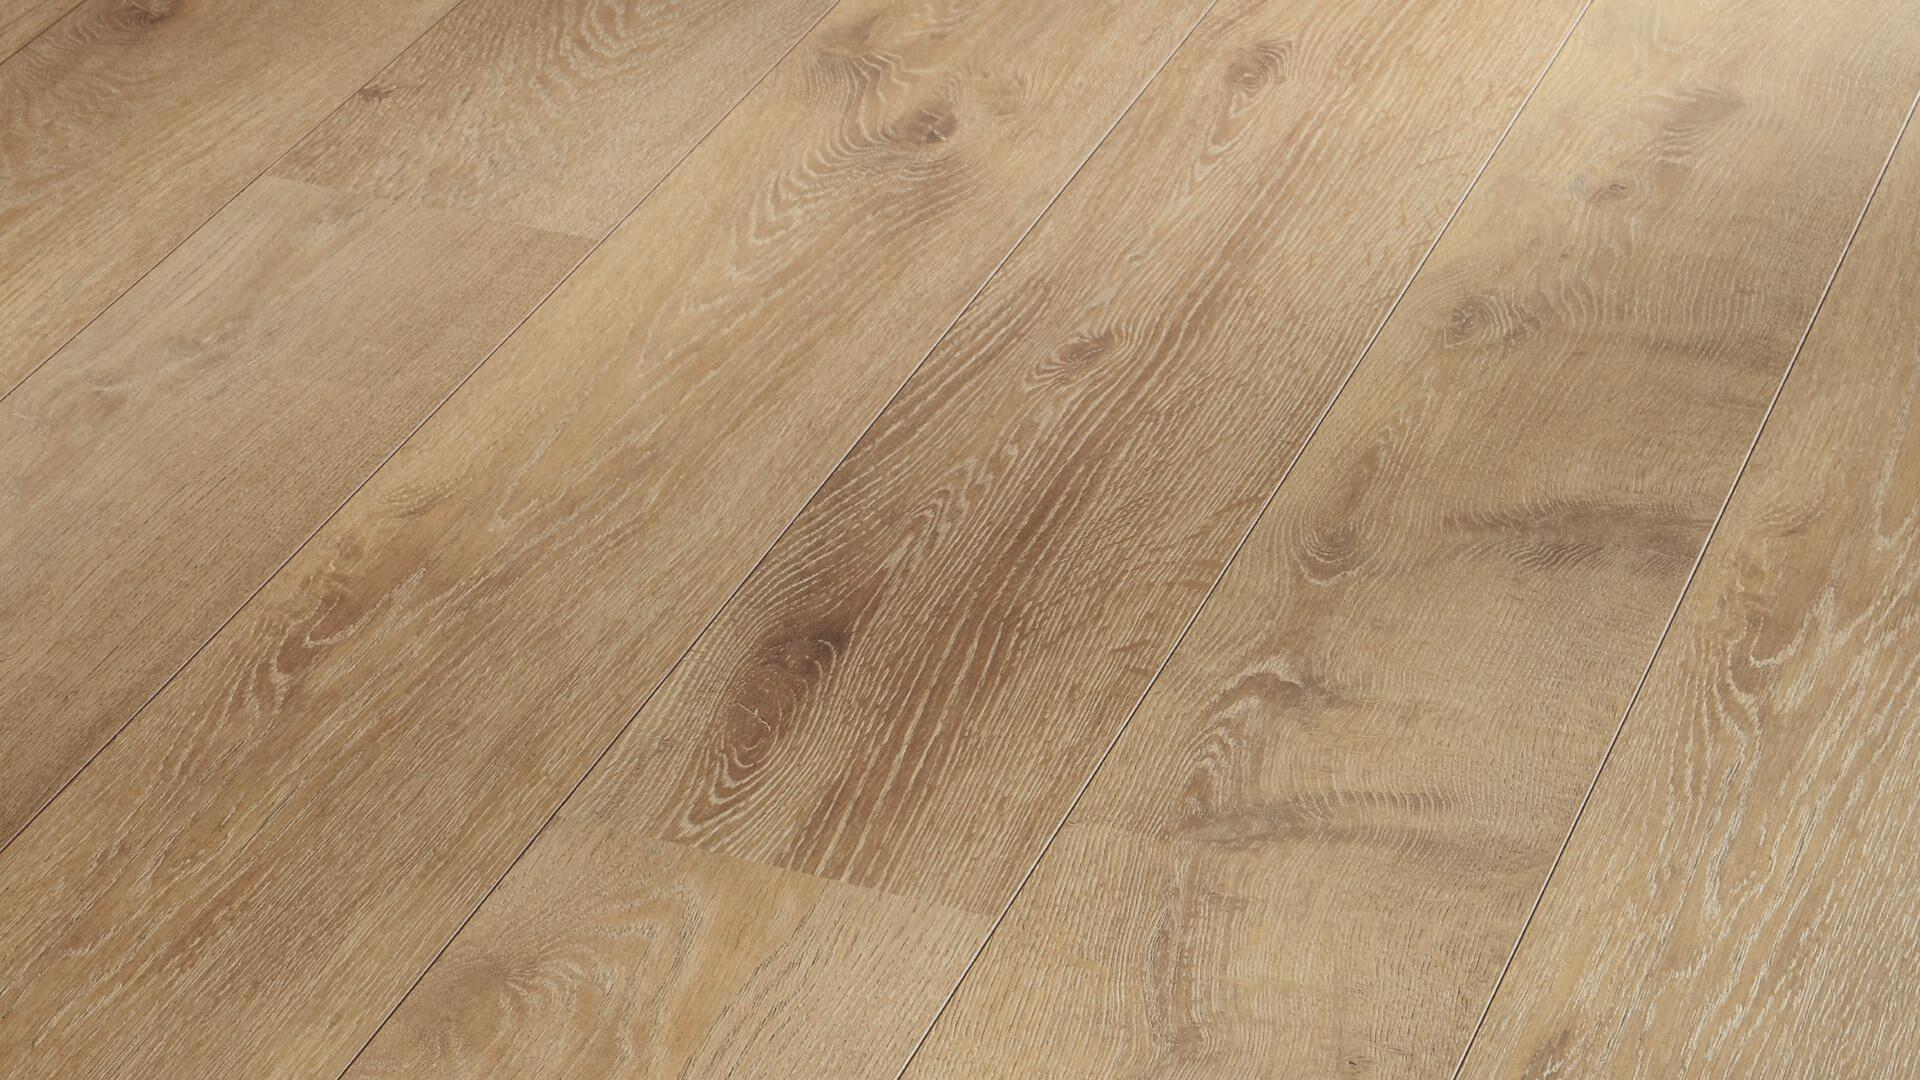 Laminate flooring Melango LD 300|20 Medium oak 6131